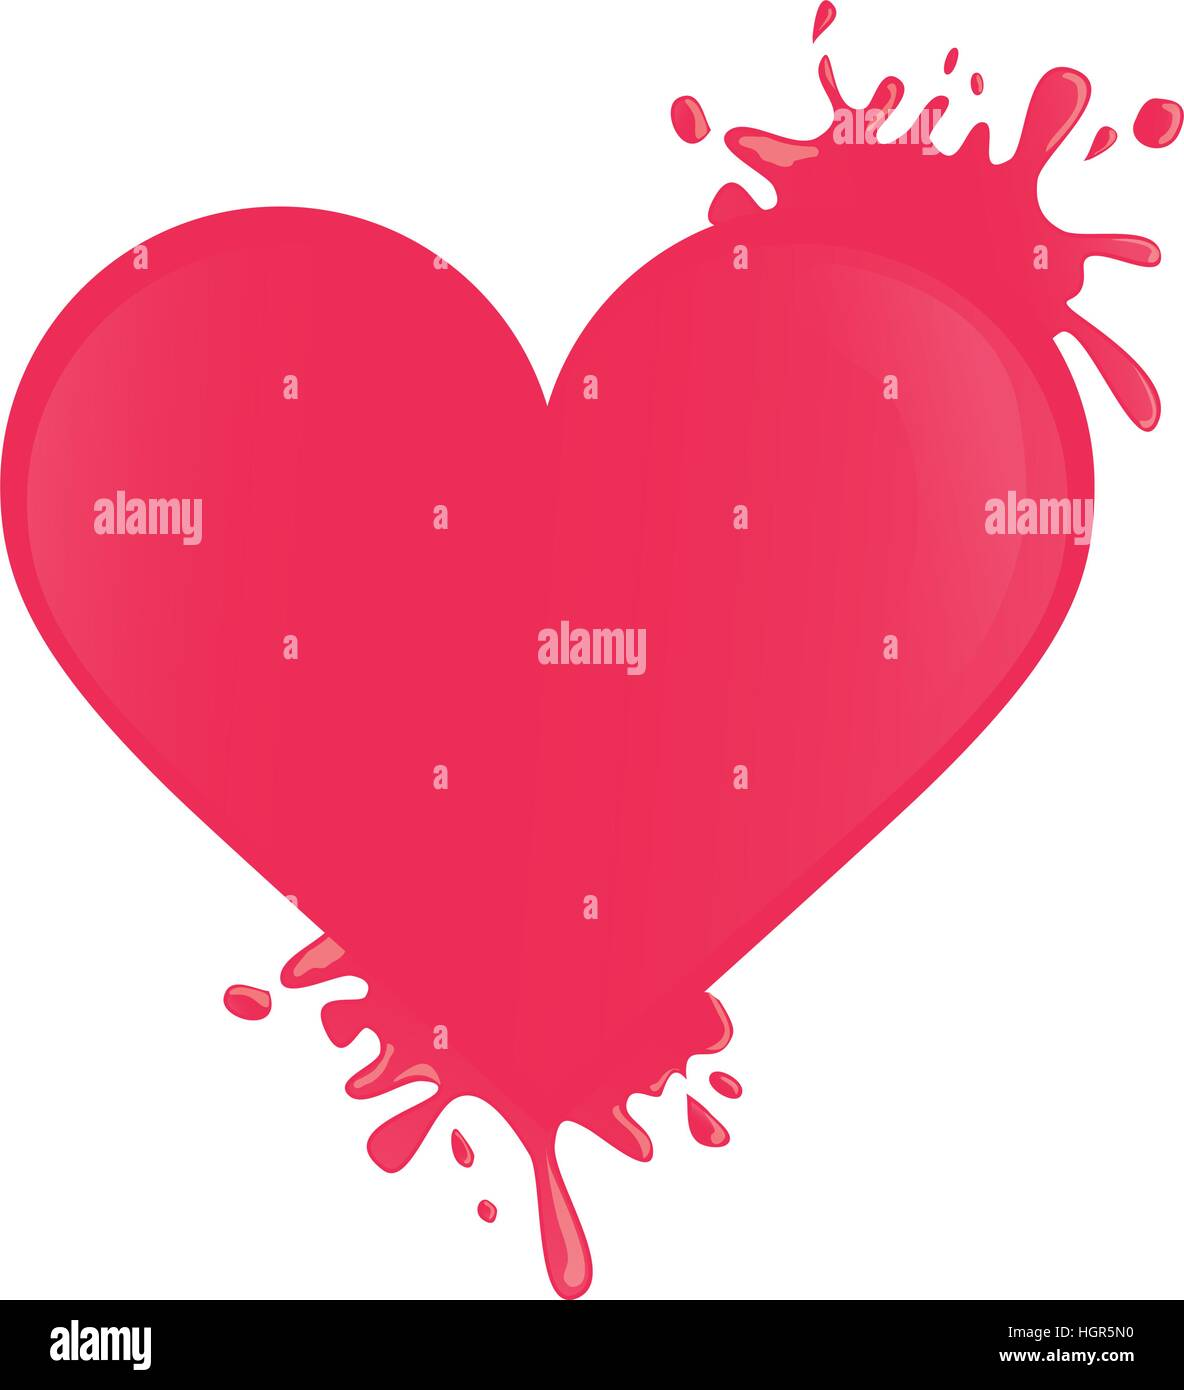 Bright Pink Paint Hot Pink Paint Splatter Heart Cartoon Icon Image Vector